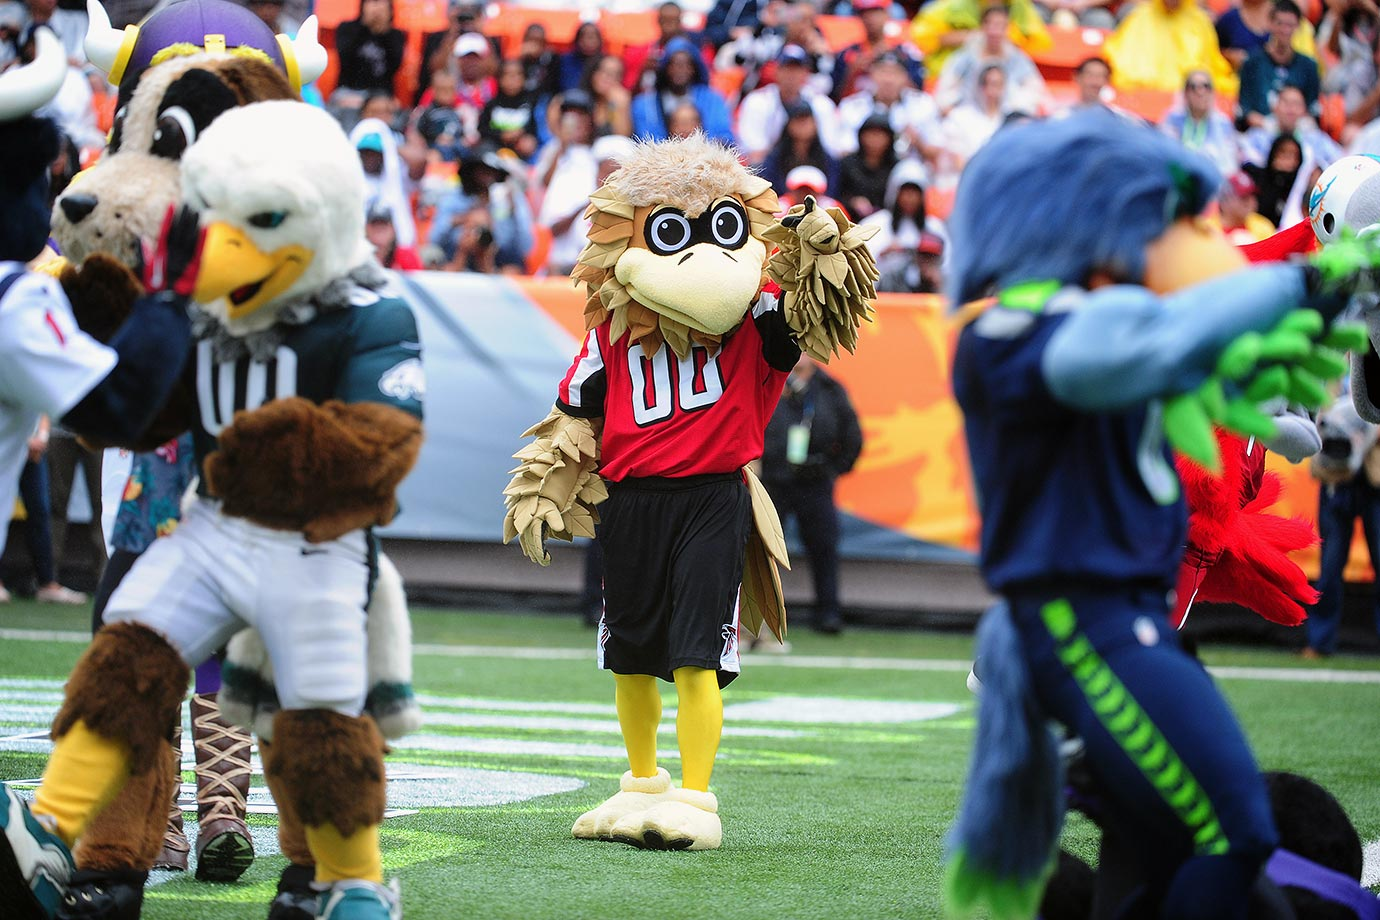 NFL - Mascote Freddy, do Atlanta falcons